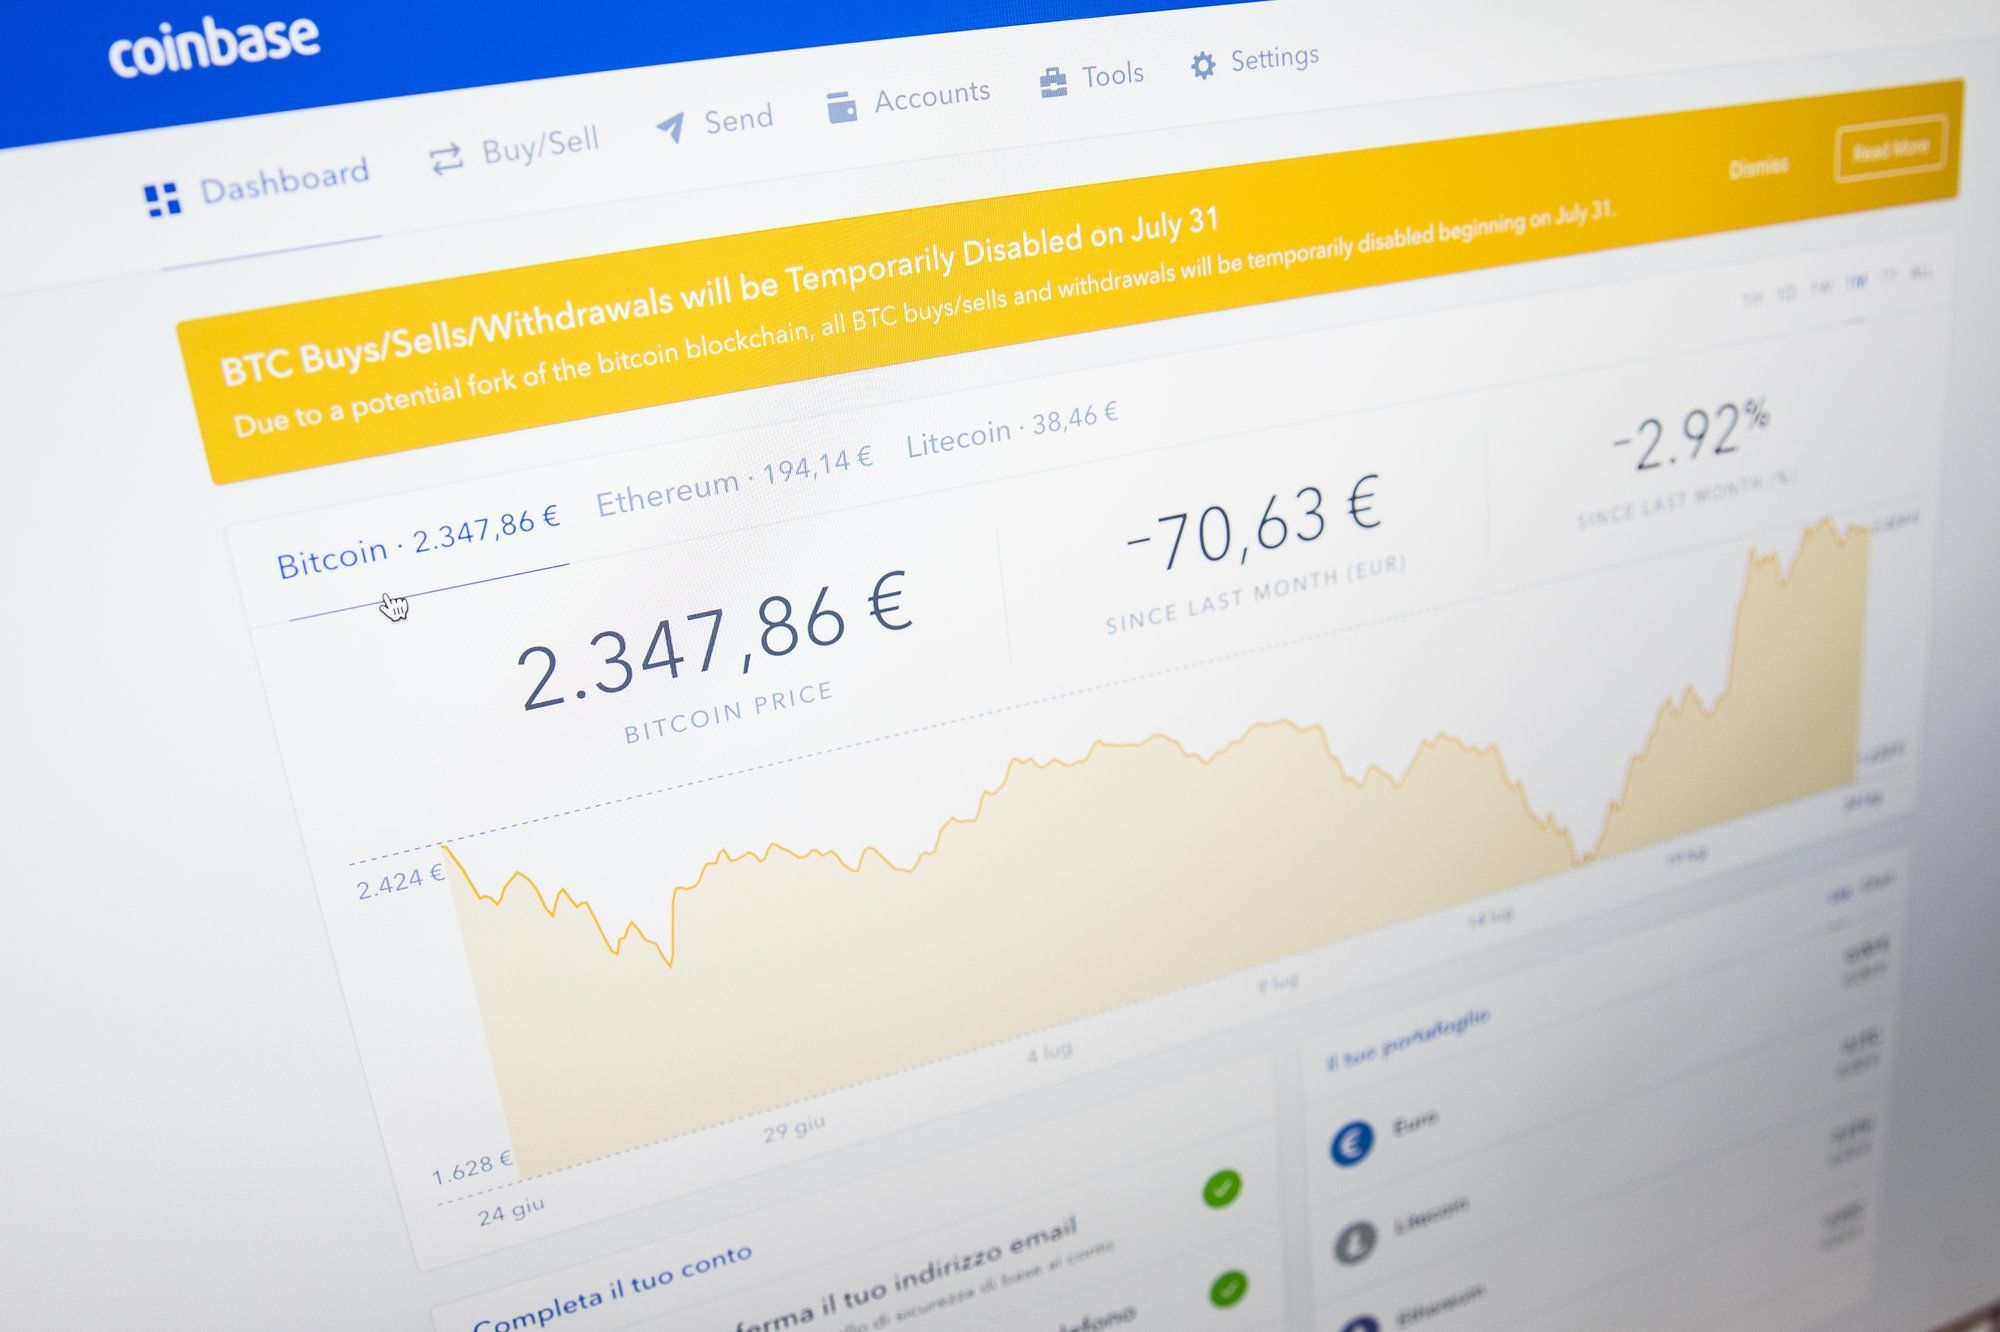 Coinbase One Of The Biggest Bitcoin Marketplaces Says Buying And Selling Temporarily Disabled Amid Price Rout Https Bitcoin Bitcoin Price Online Networking